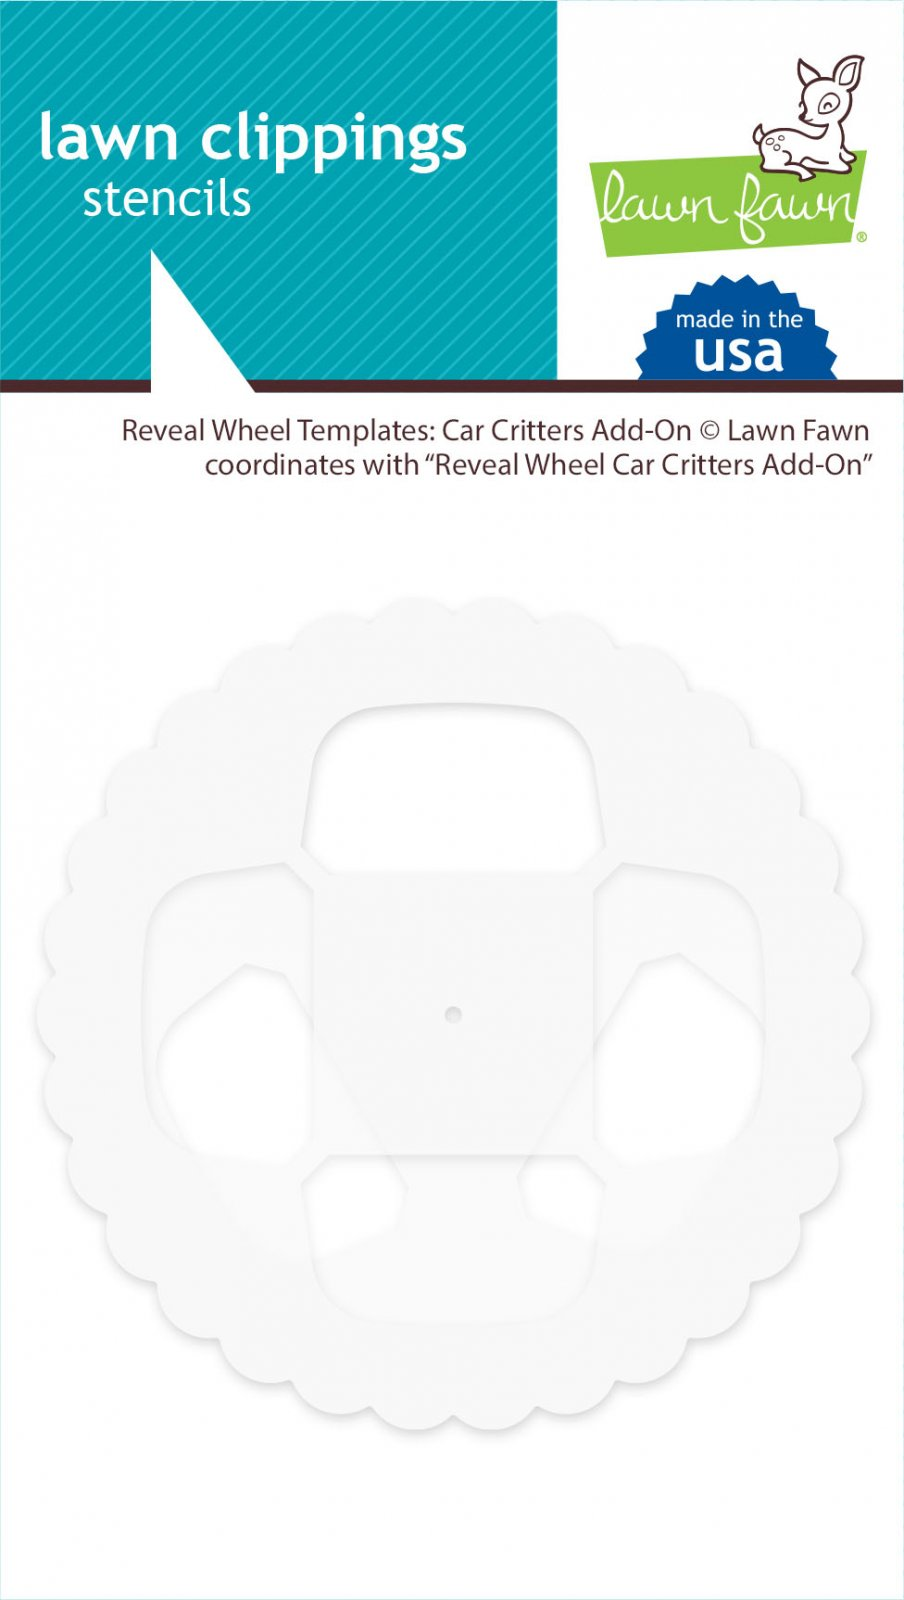 Lawn Fawn Reveal Wheel Template - Car Critters Add-On